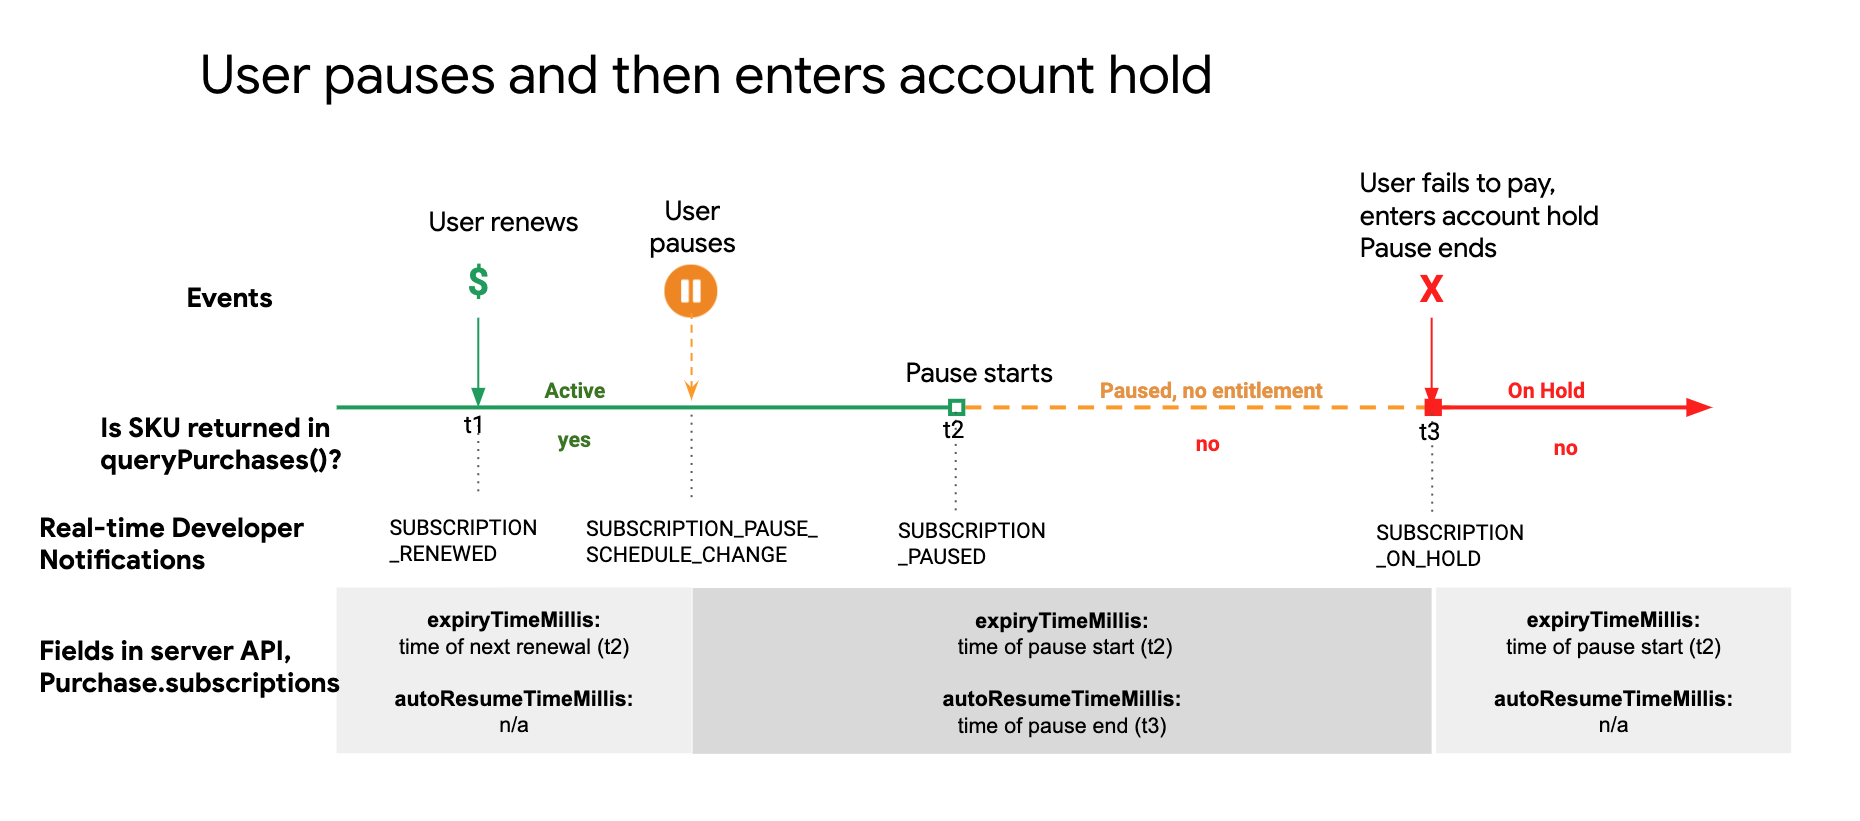 A user pauses their subscription and then enters account hold